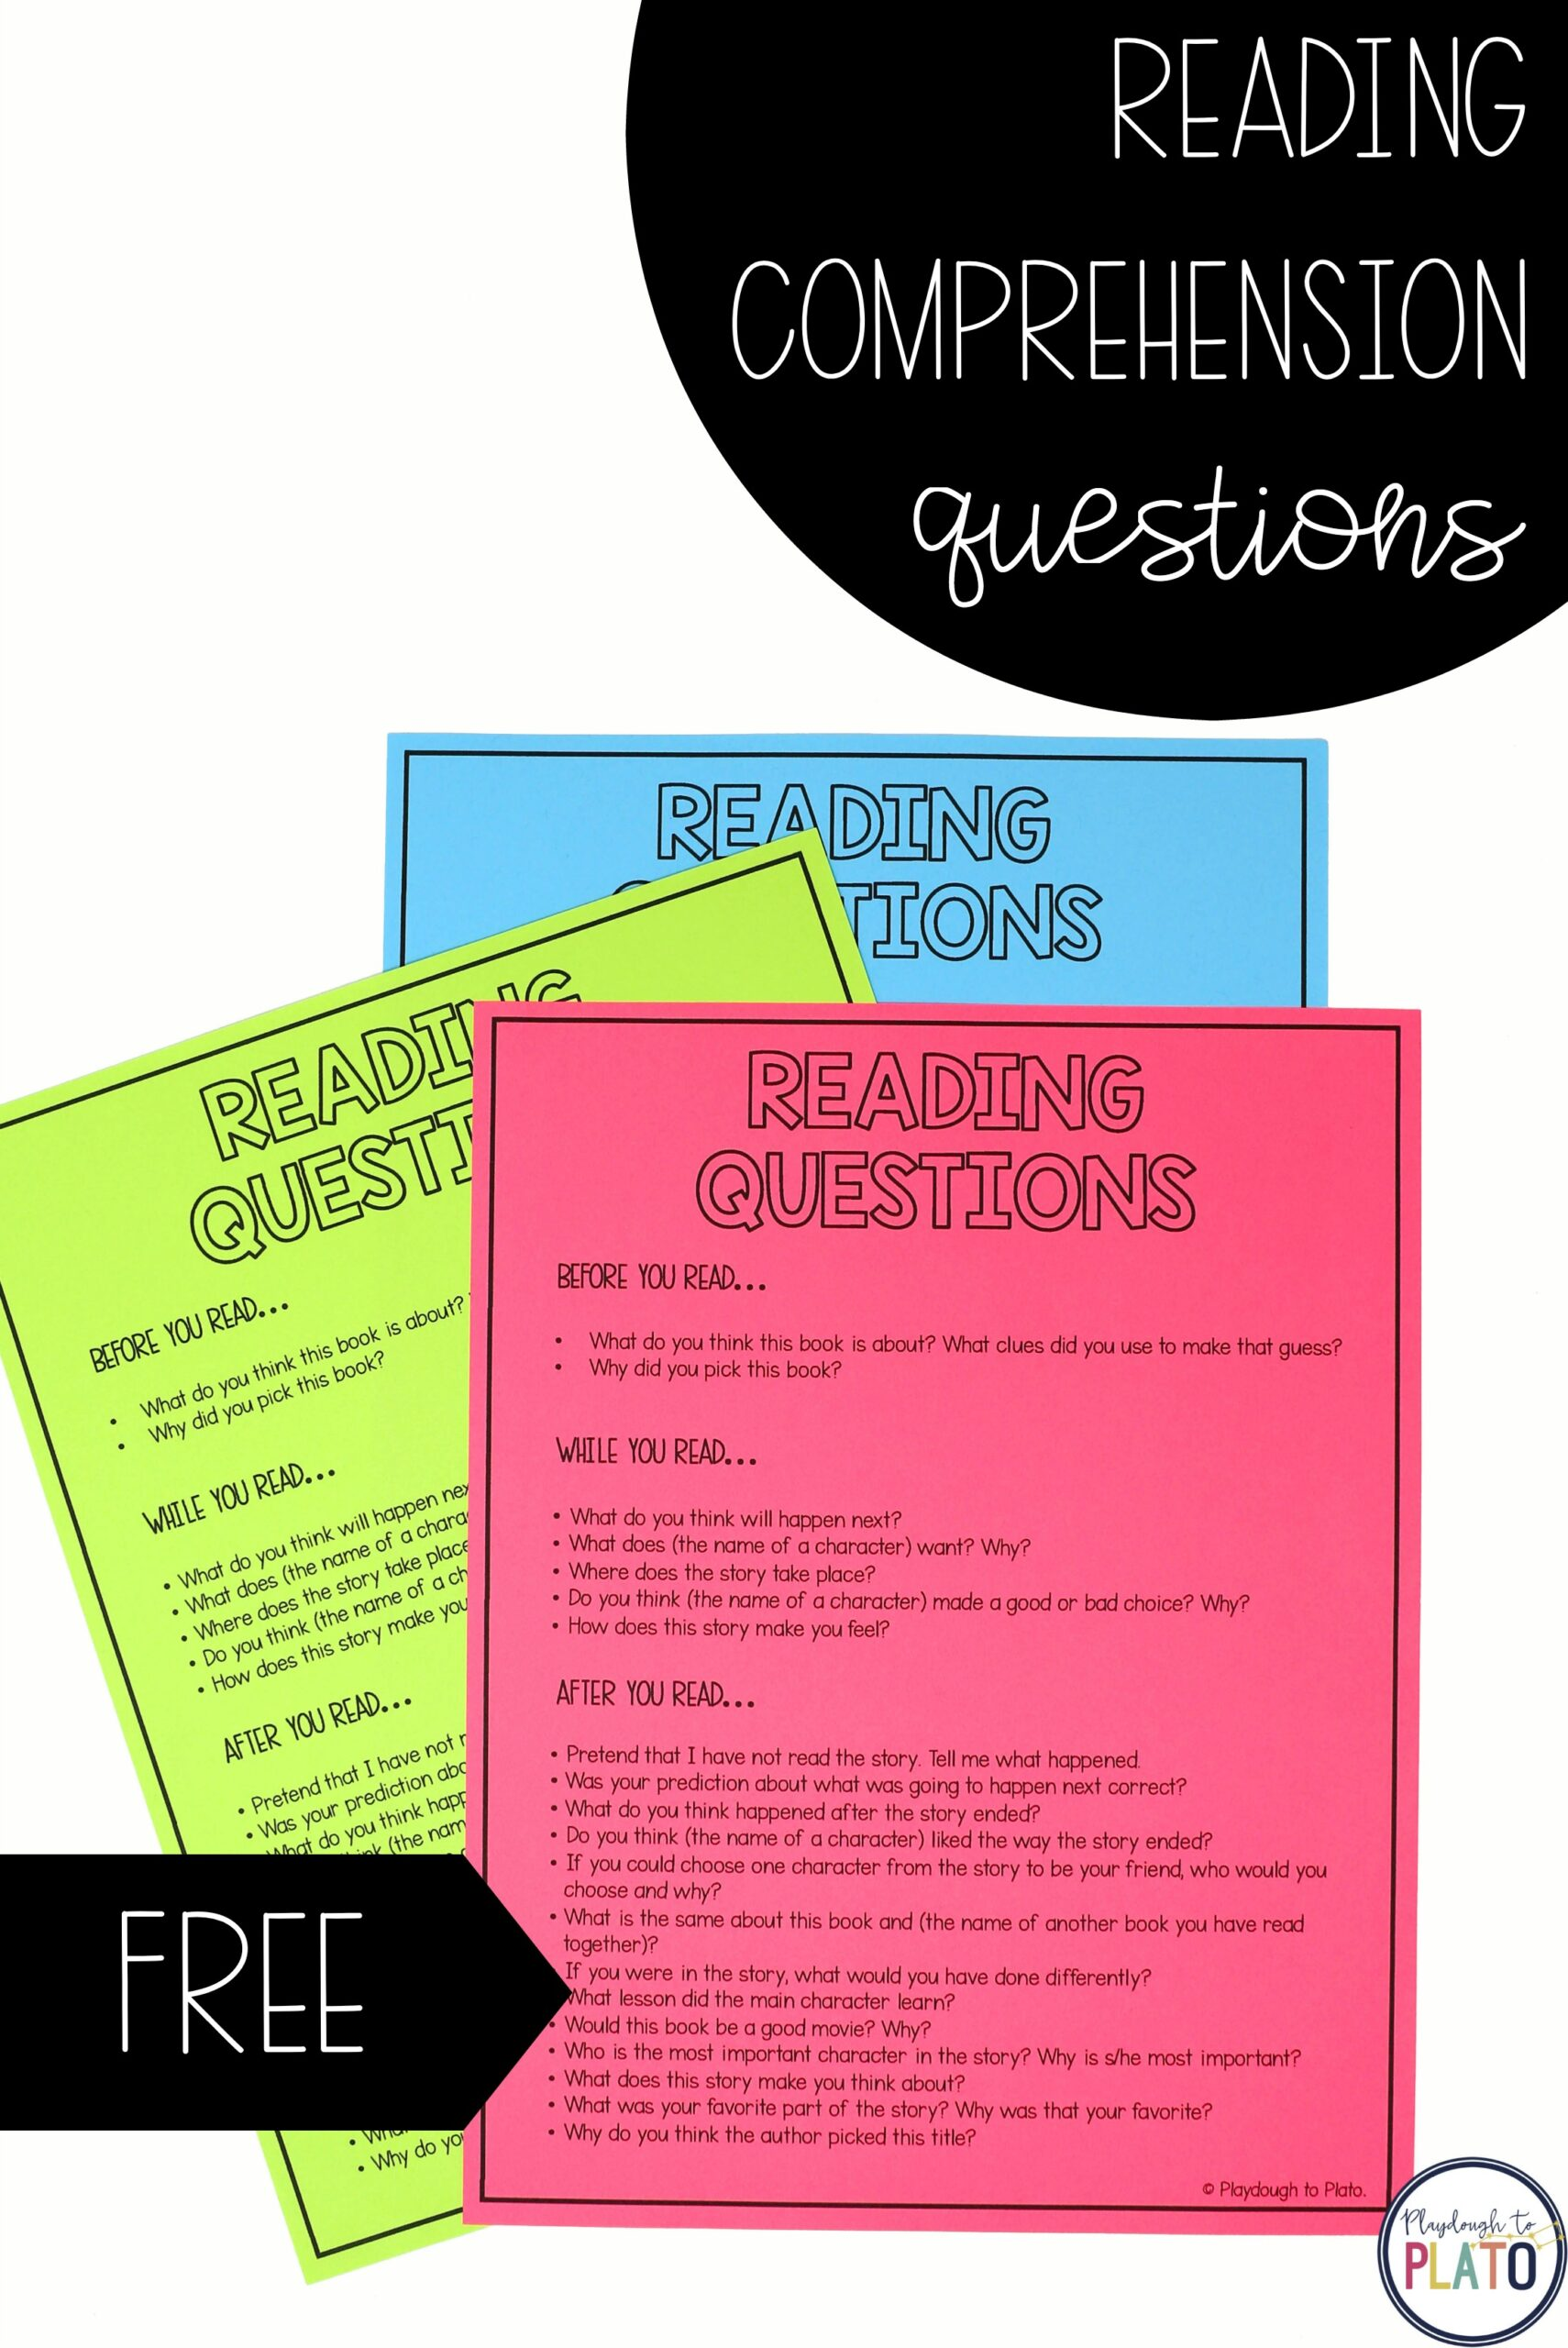 20 Fun Reading Comprehension Questions for Kids